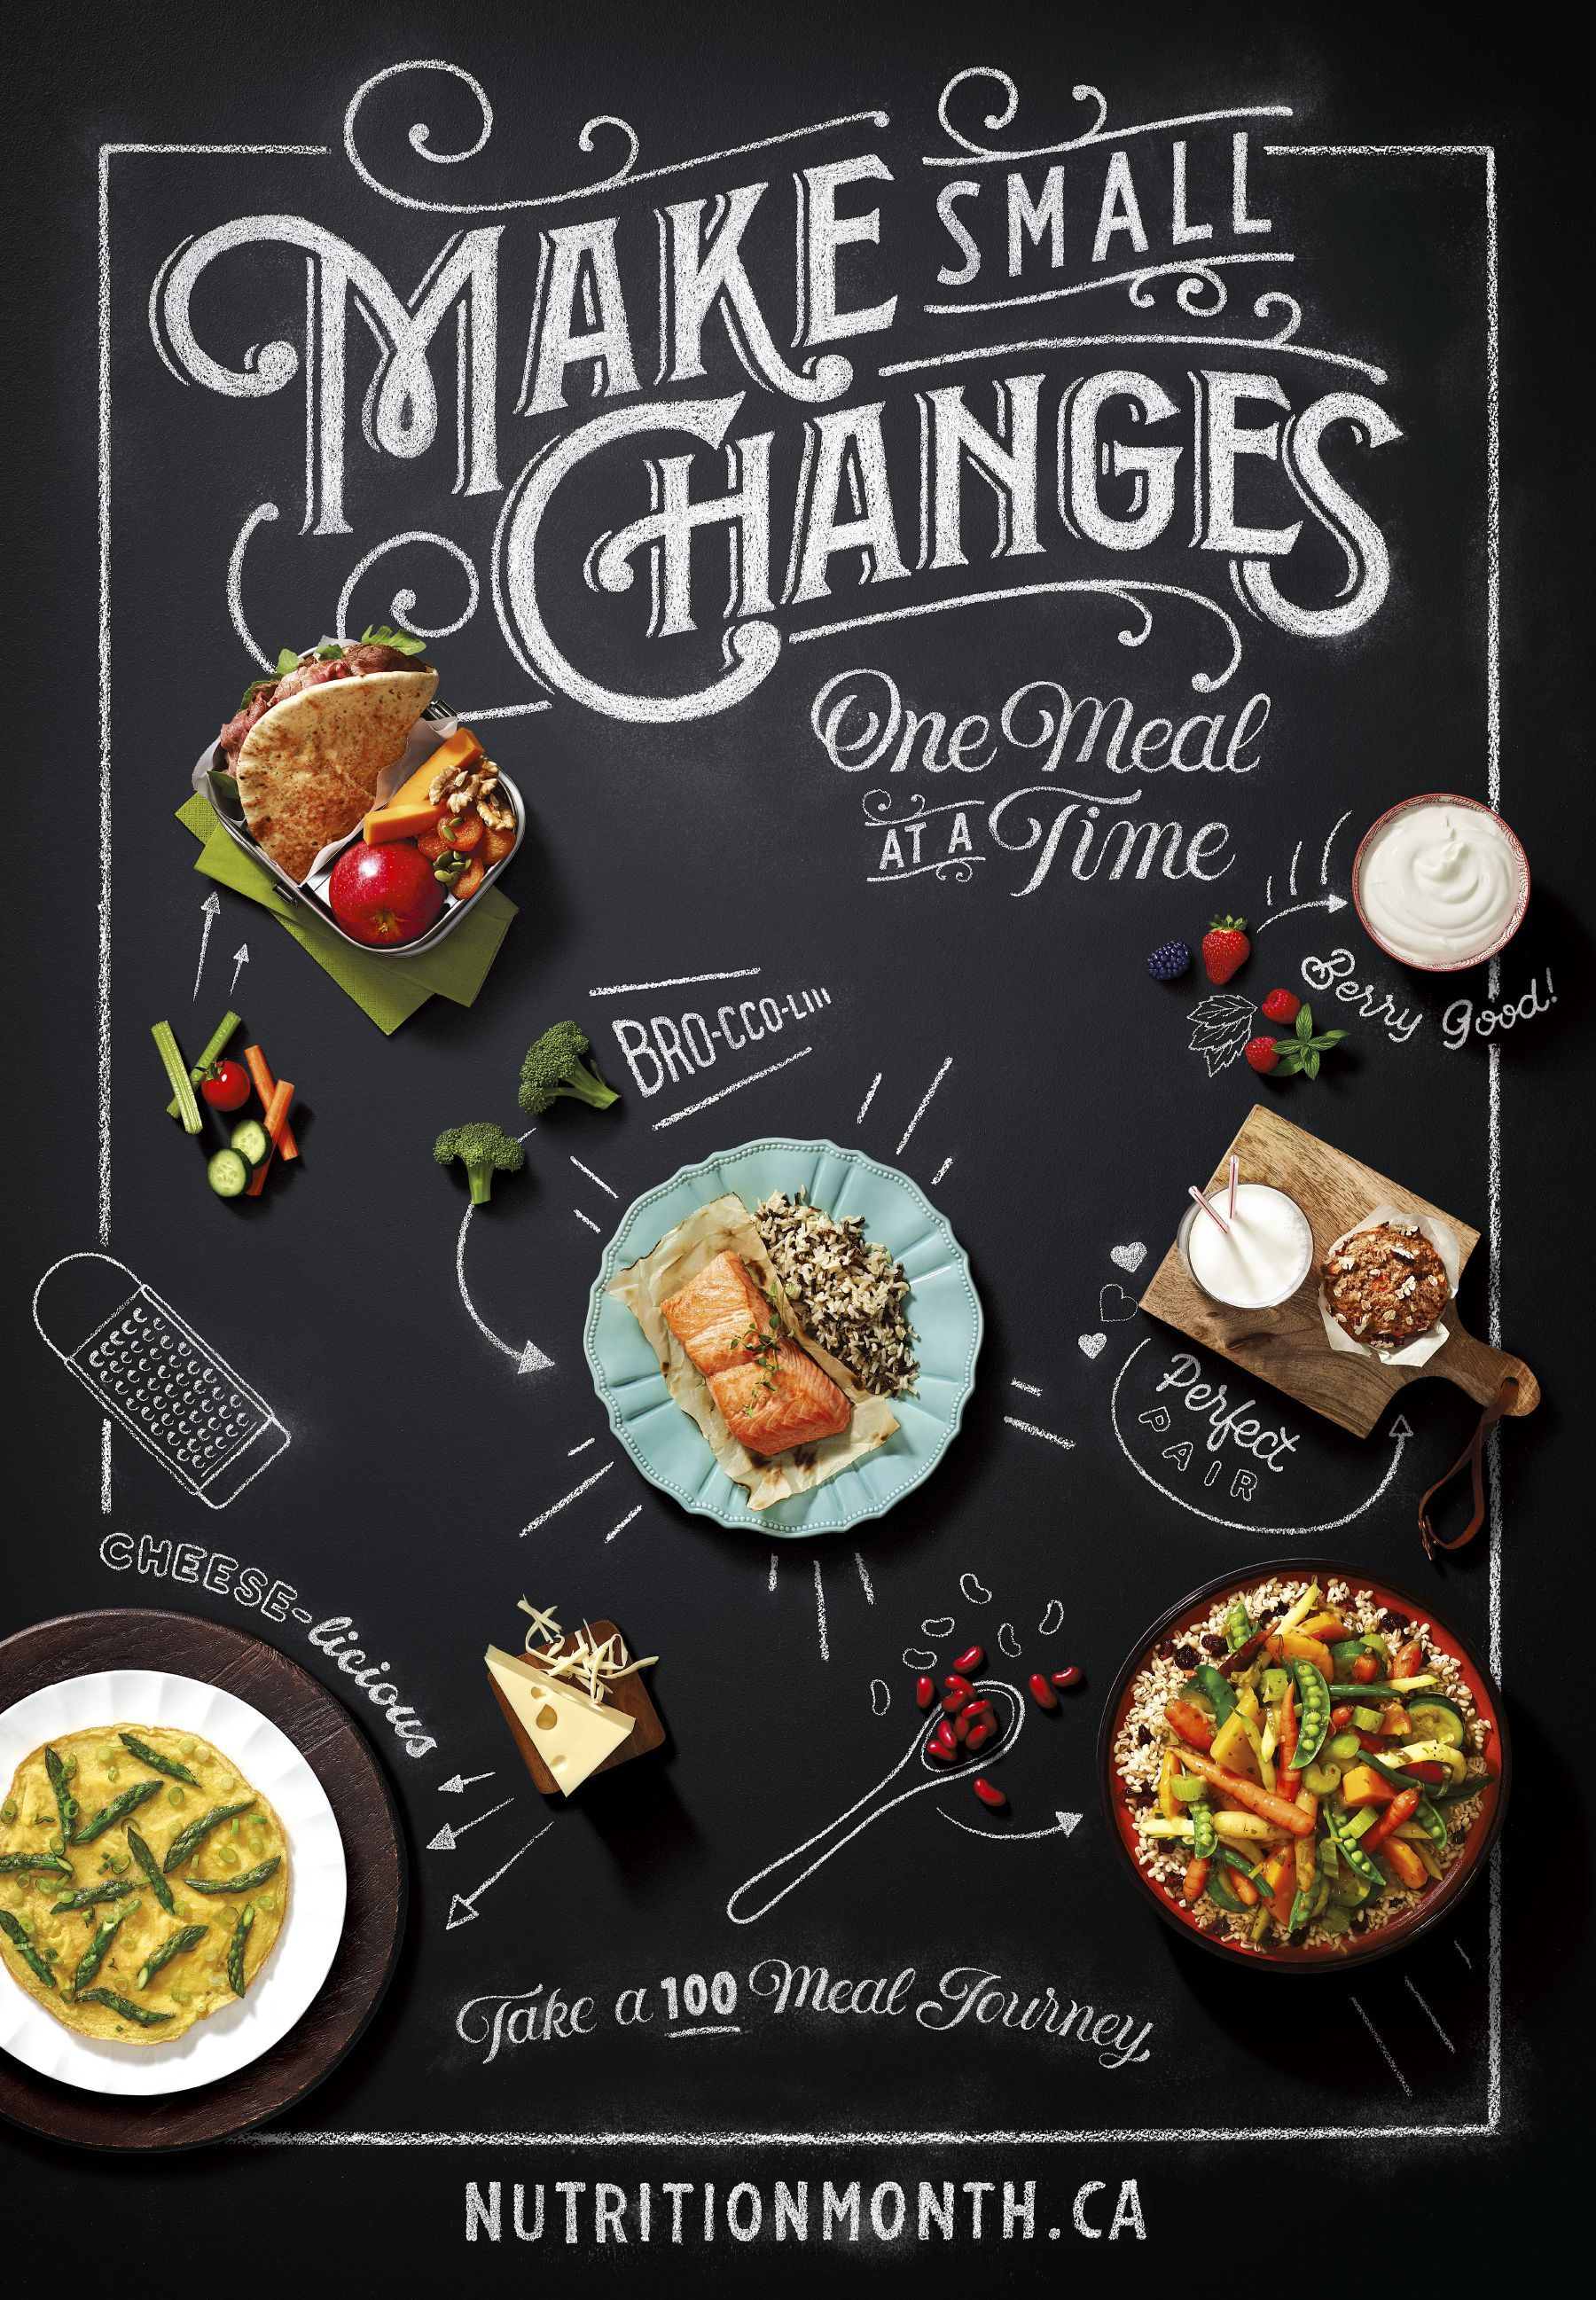 Celebrate Nutrition Month Make Small Changes One Meal At A Time Nutritionmonth Food Menu Design Food Poster Design Food Poster